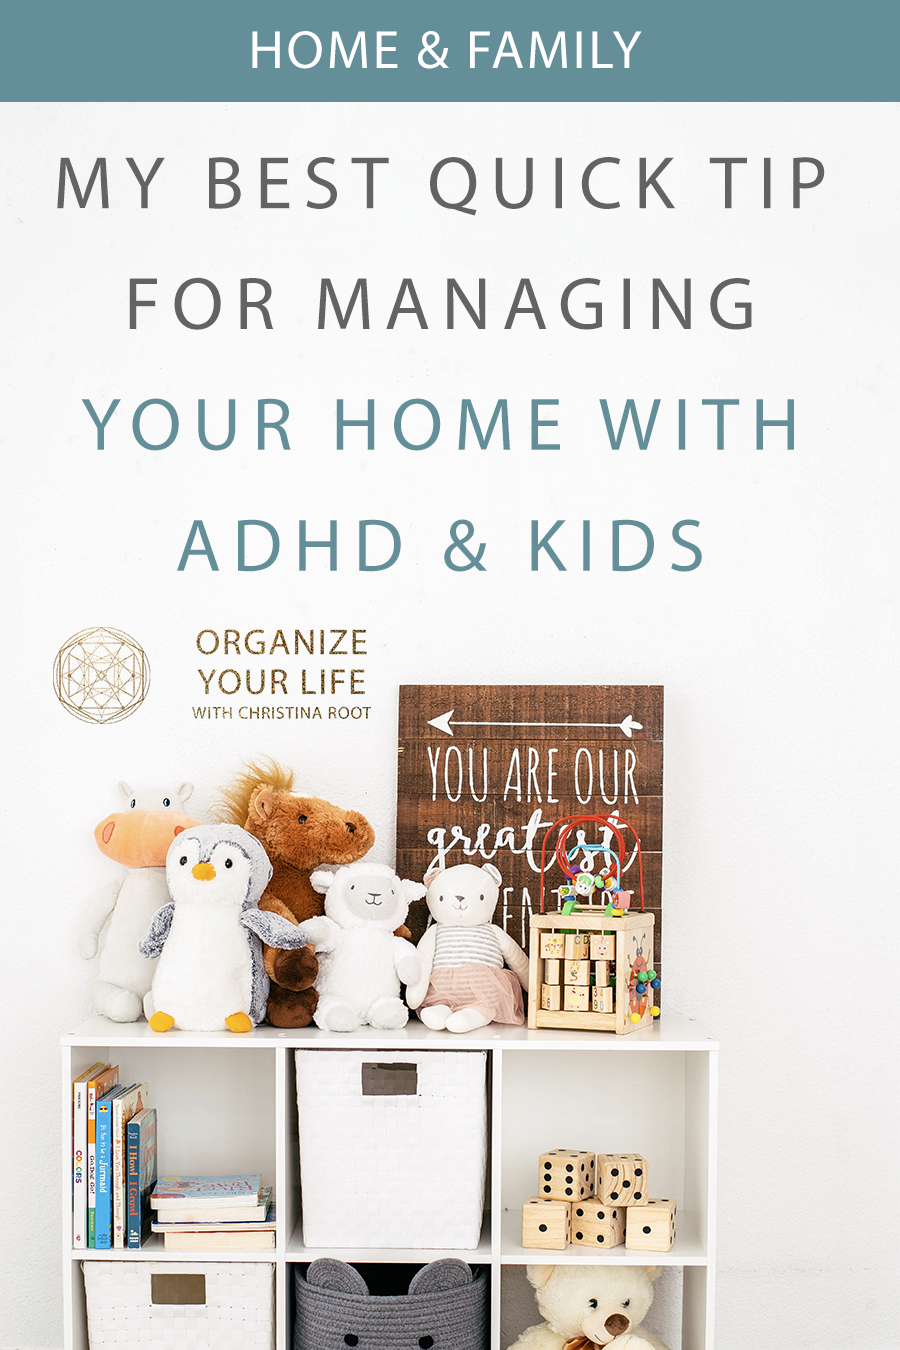 Quick Tip for Managing a Home with ADHD & Kids